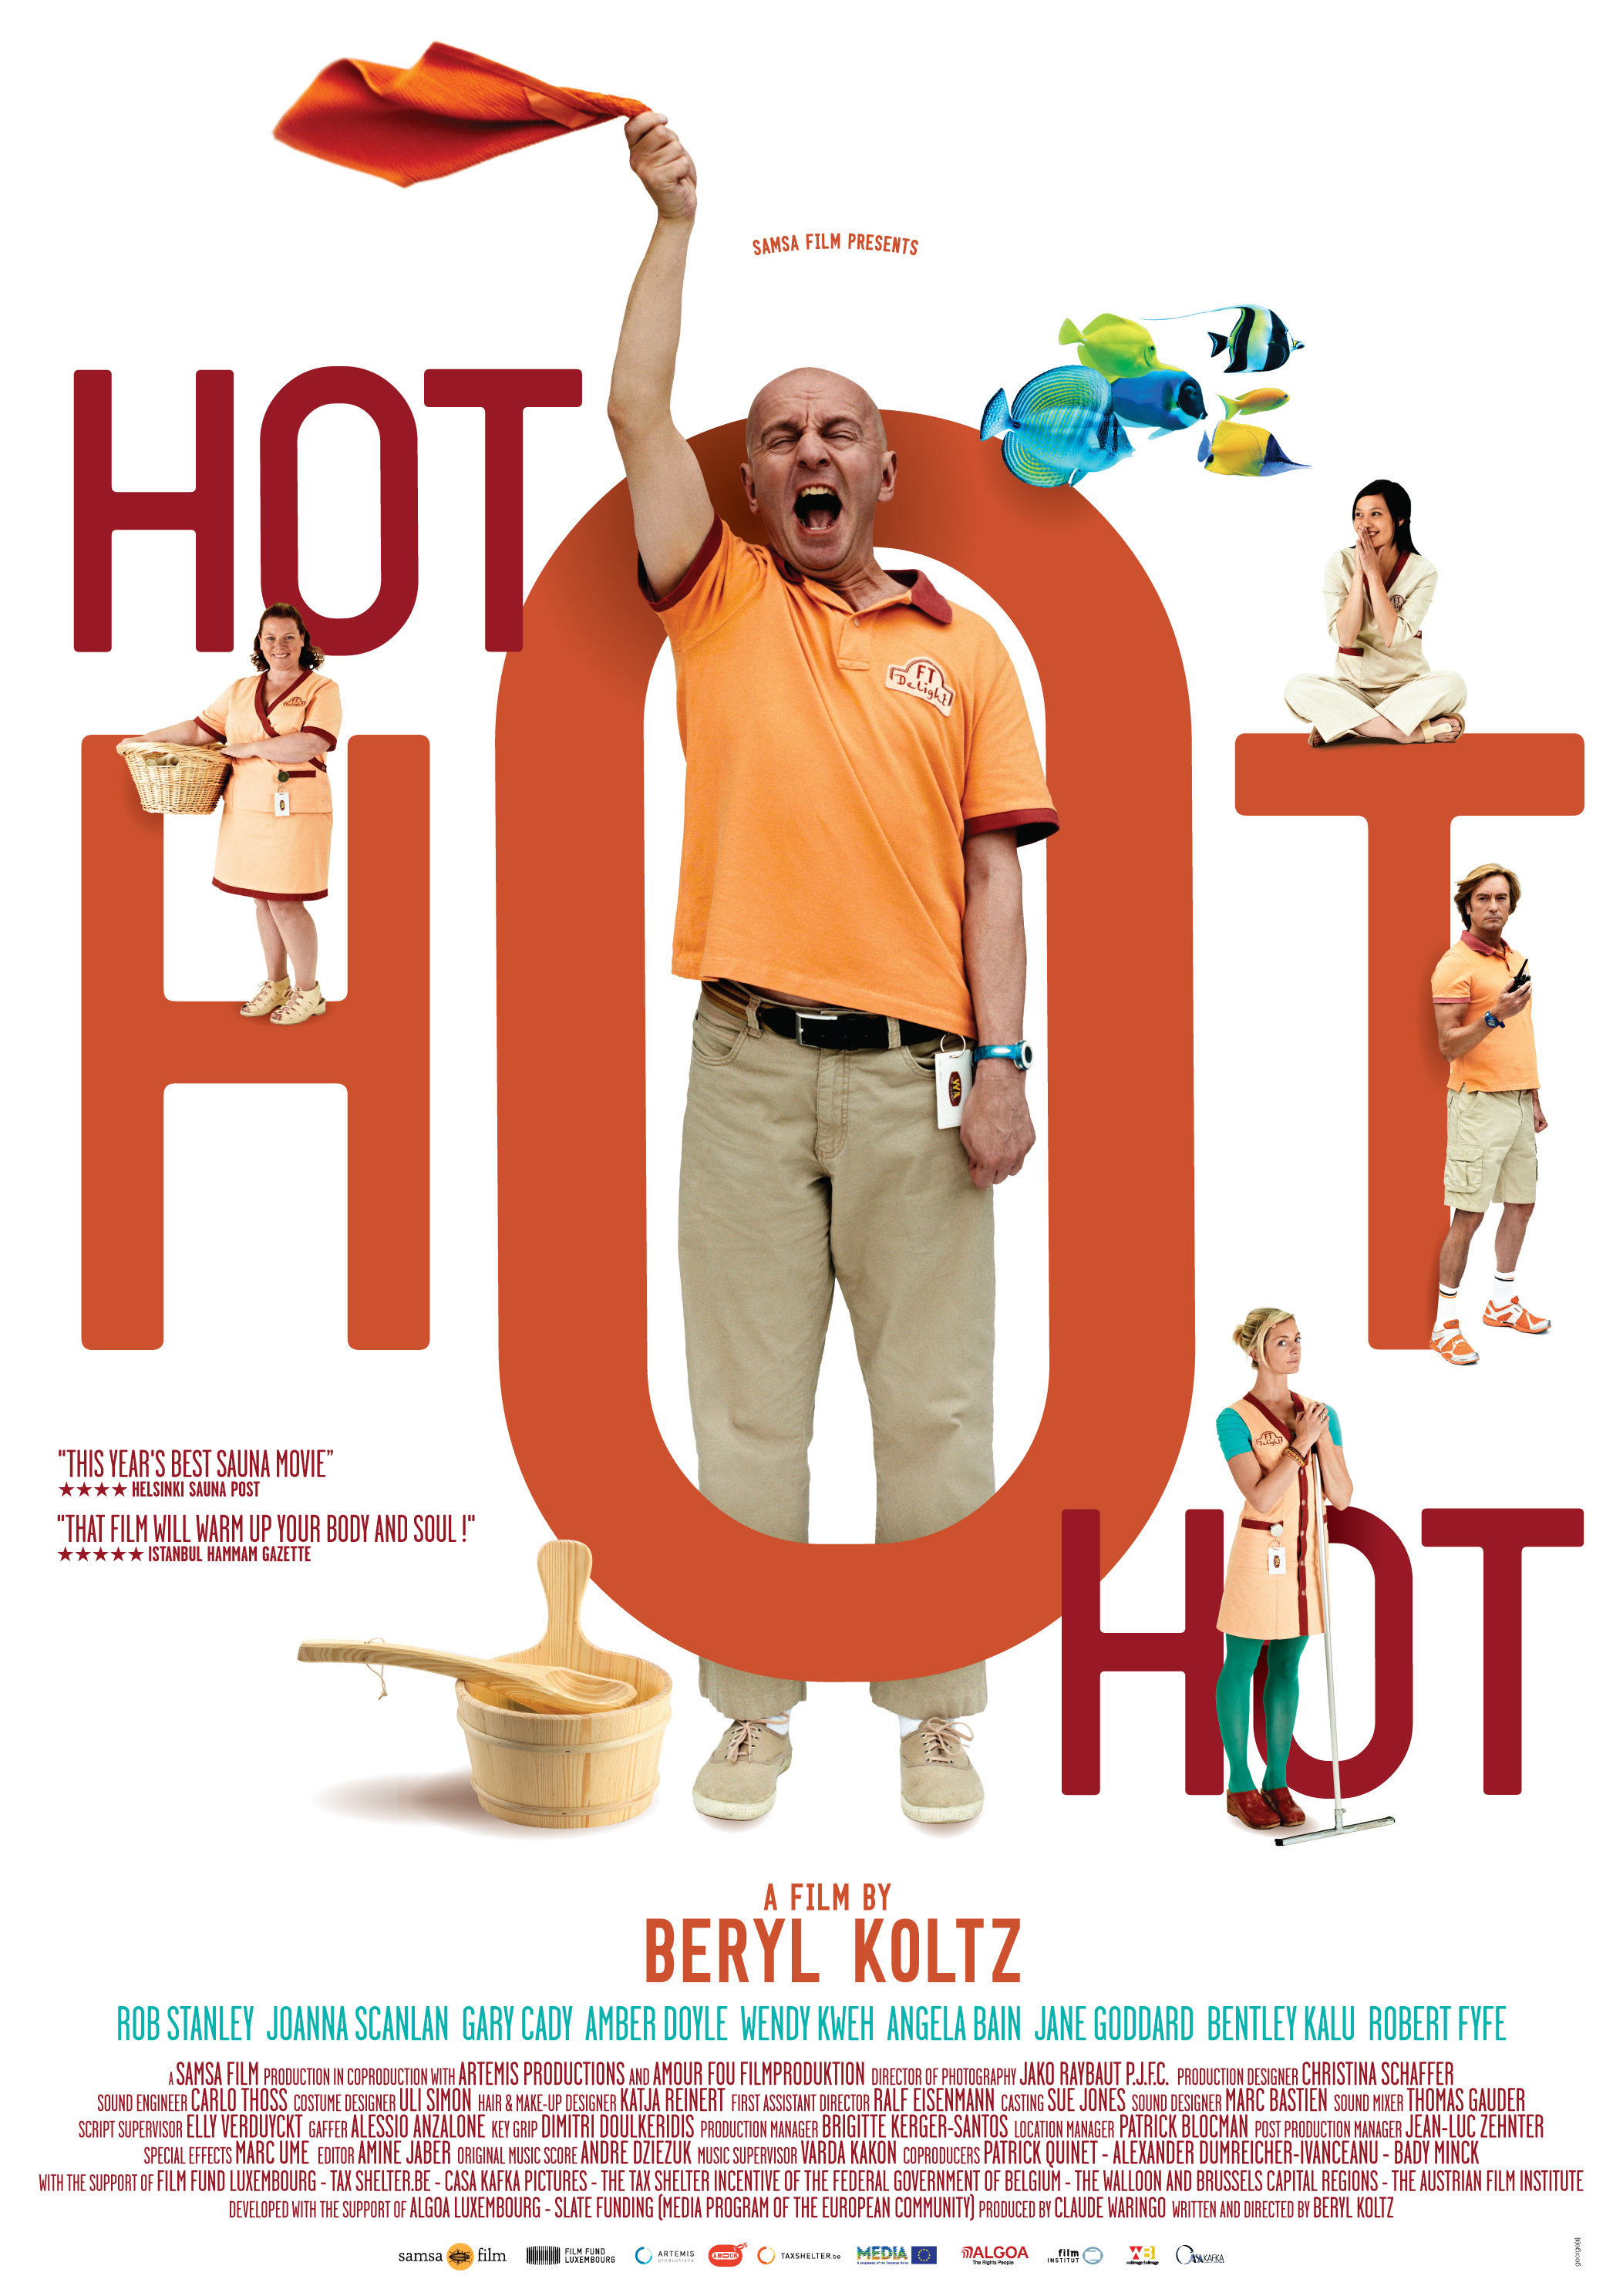 Agree, remarkable hot hot hot film